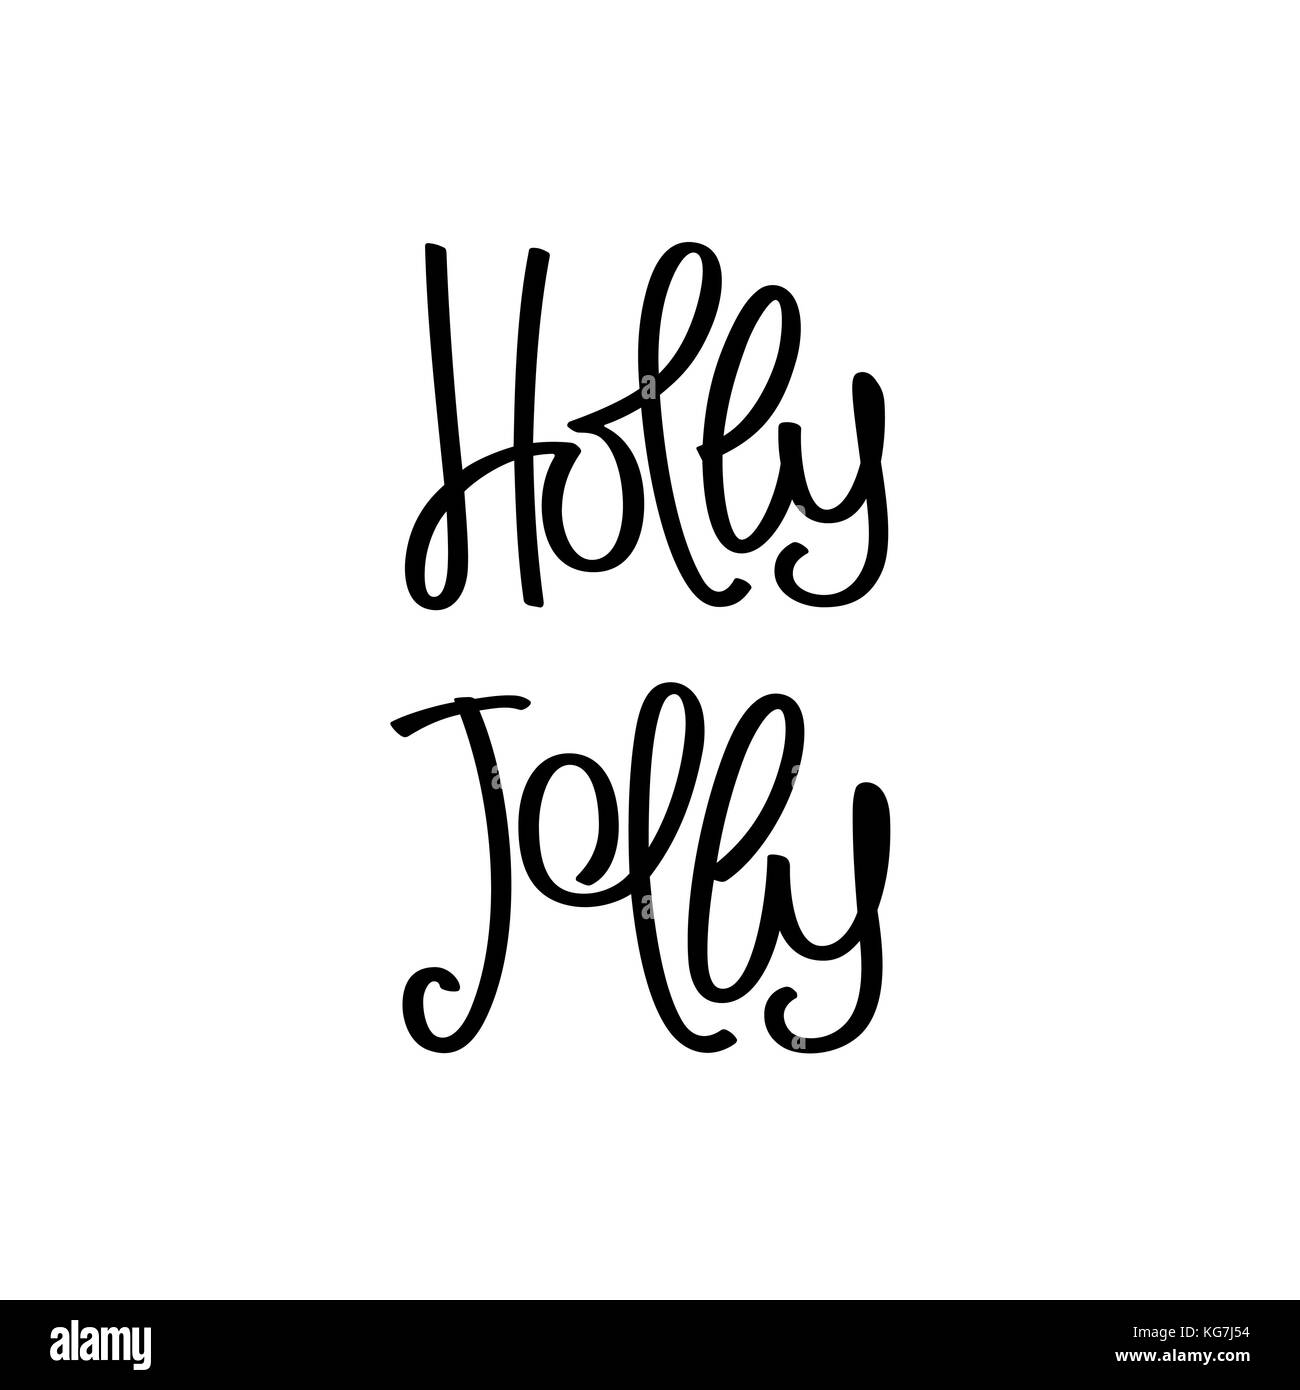 Holly Jolly. Simple monochrome handwritten lettering. Vector design elements - Stock Image